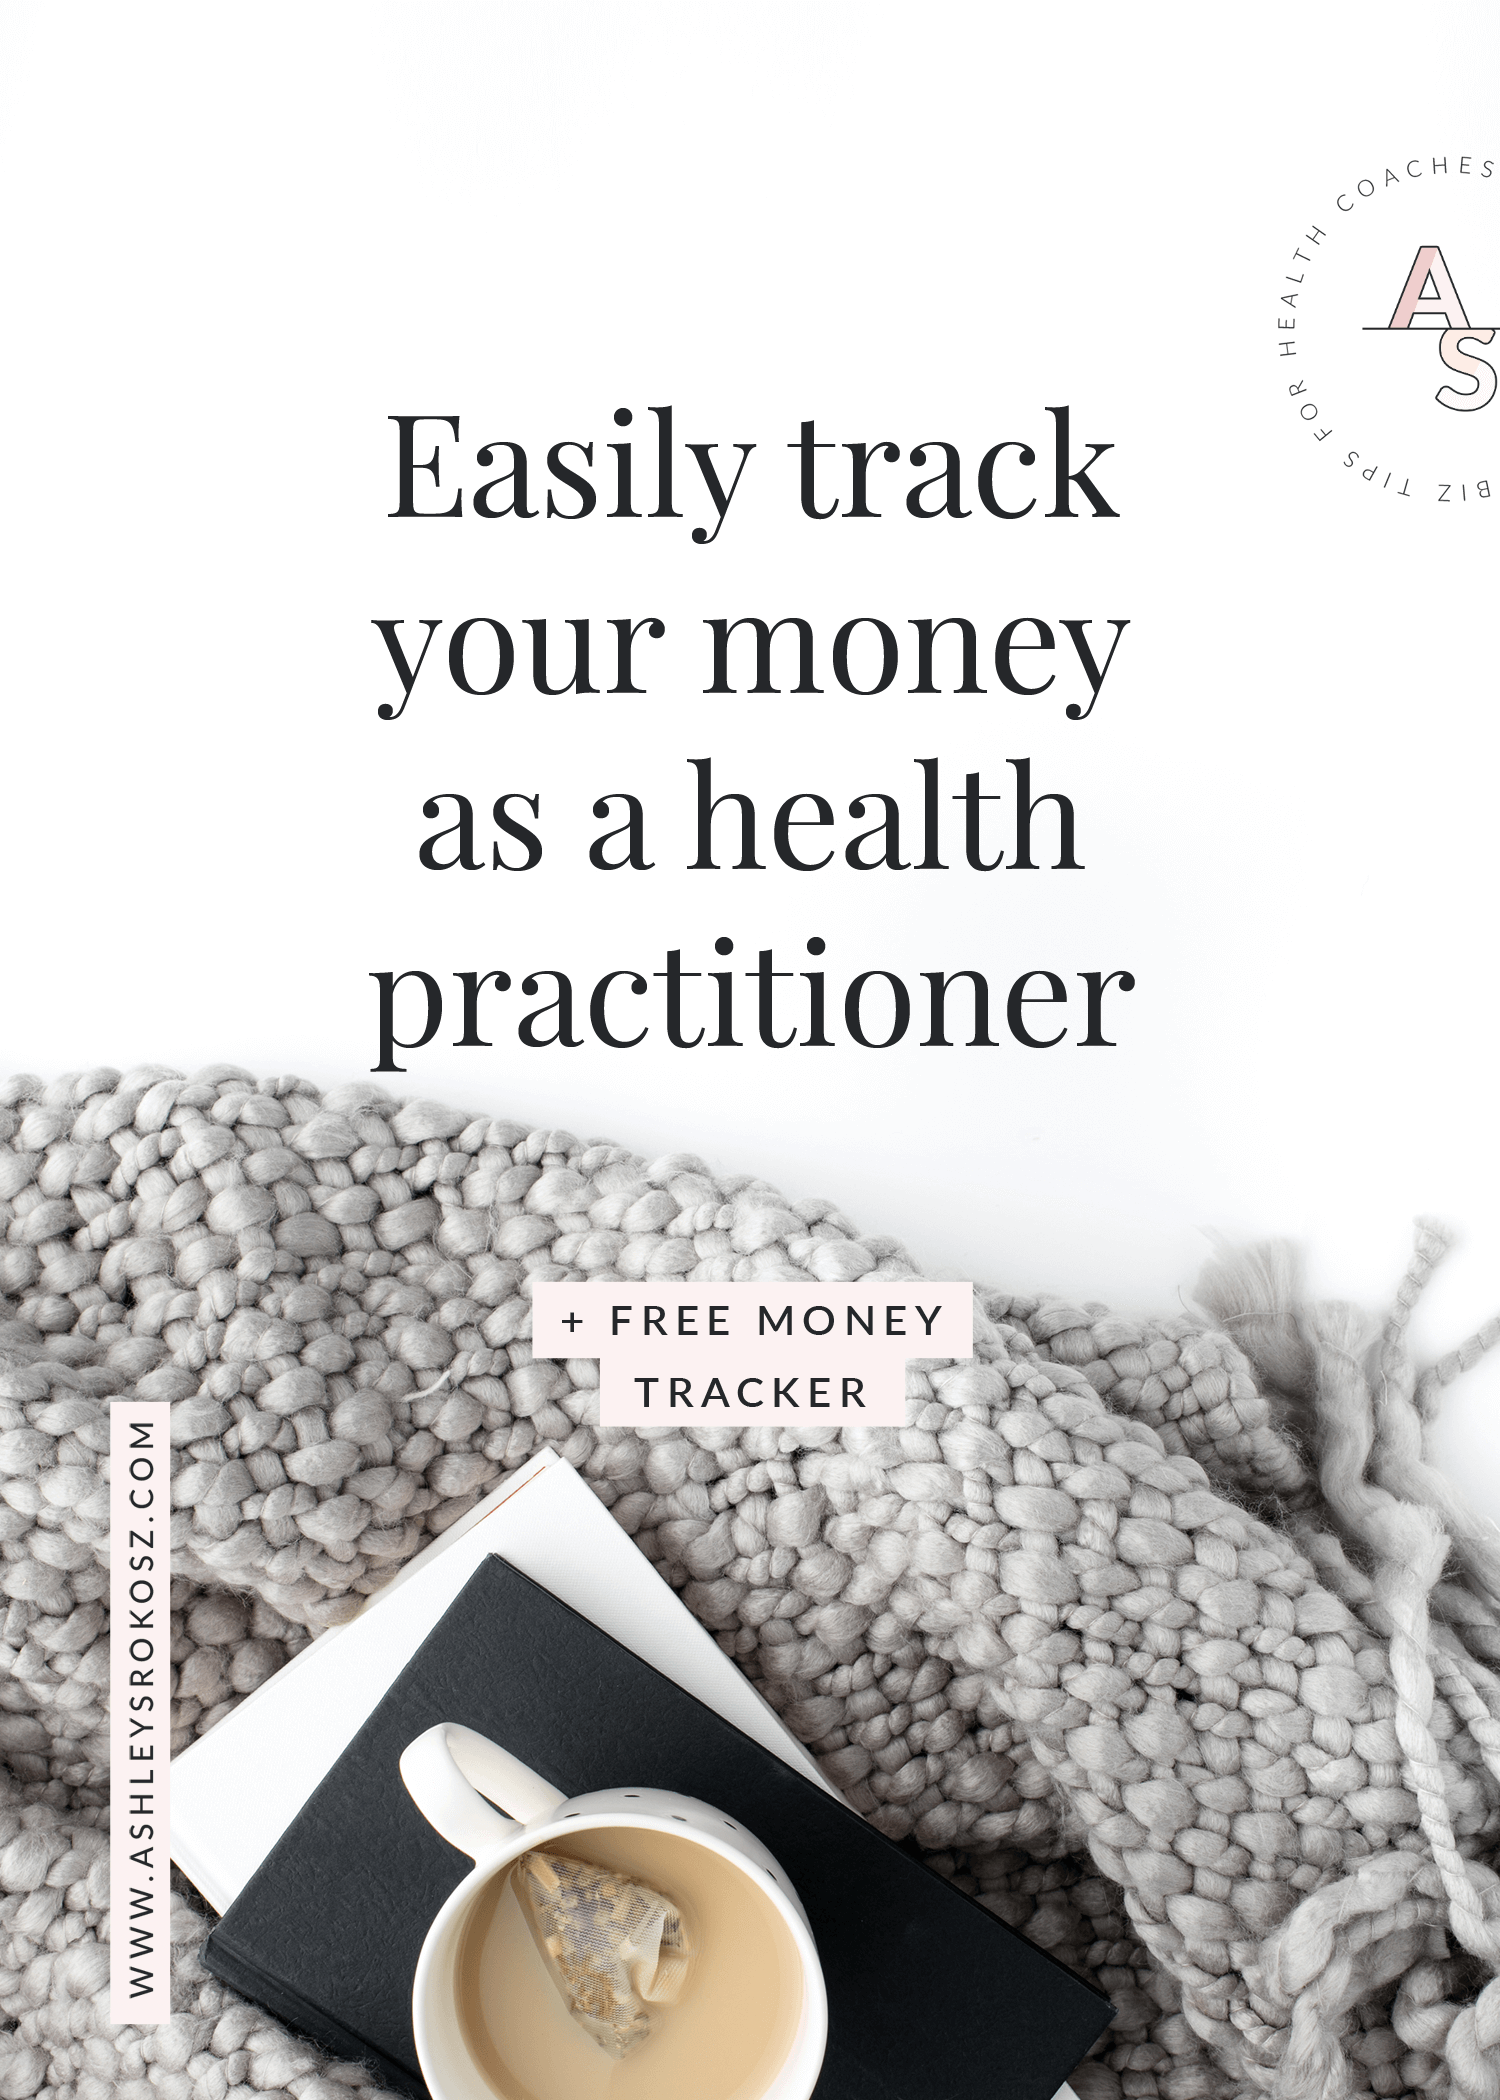 Are you a holistic health coach who needs to start tracking your business expenses? Easily keep track of your money with this business expense tracker! It's an auto-calculating spreadsheet in Excel for the whole year, and is perfect for holistic nutritionists, health coaches, or yoga teachers. Click here to get your own business expense tracker. #howtomakemoneyasahealthcoach #nutritionbusiness #healthcoachbusiness